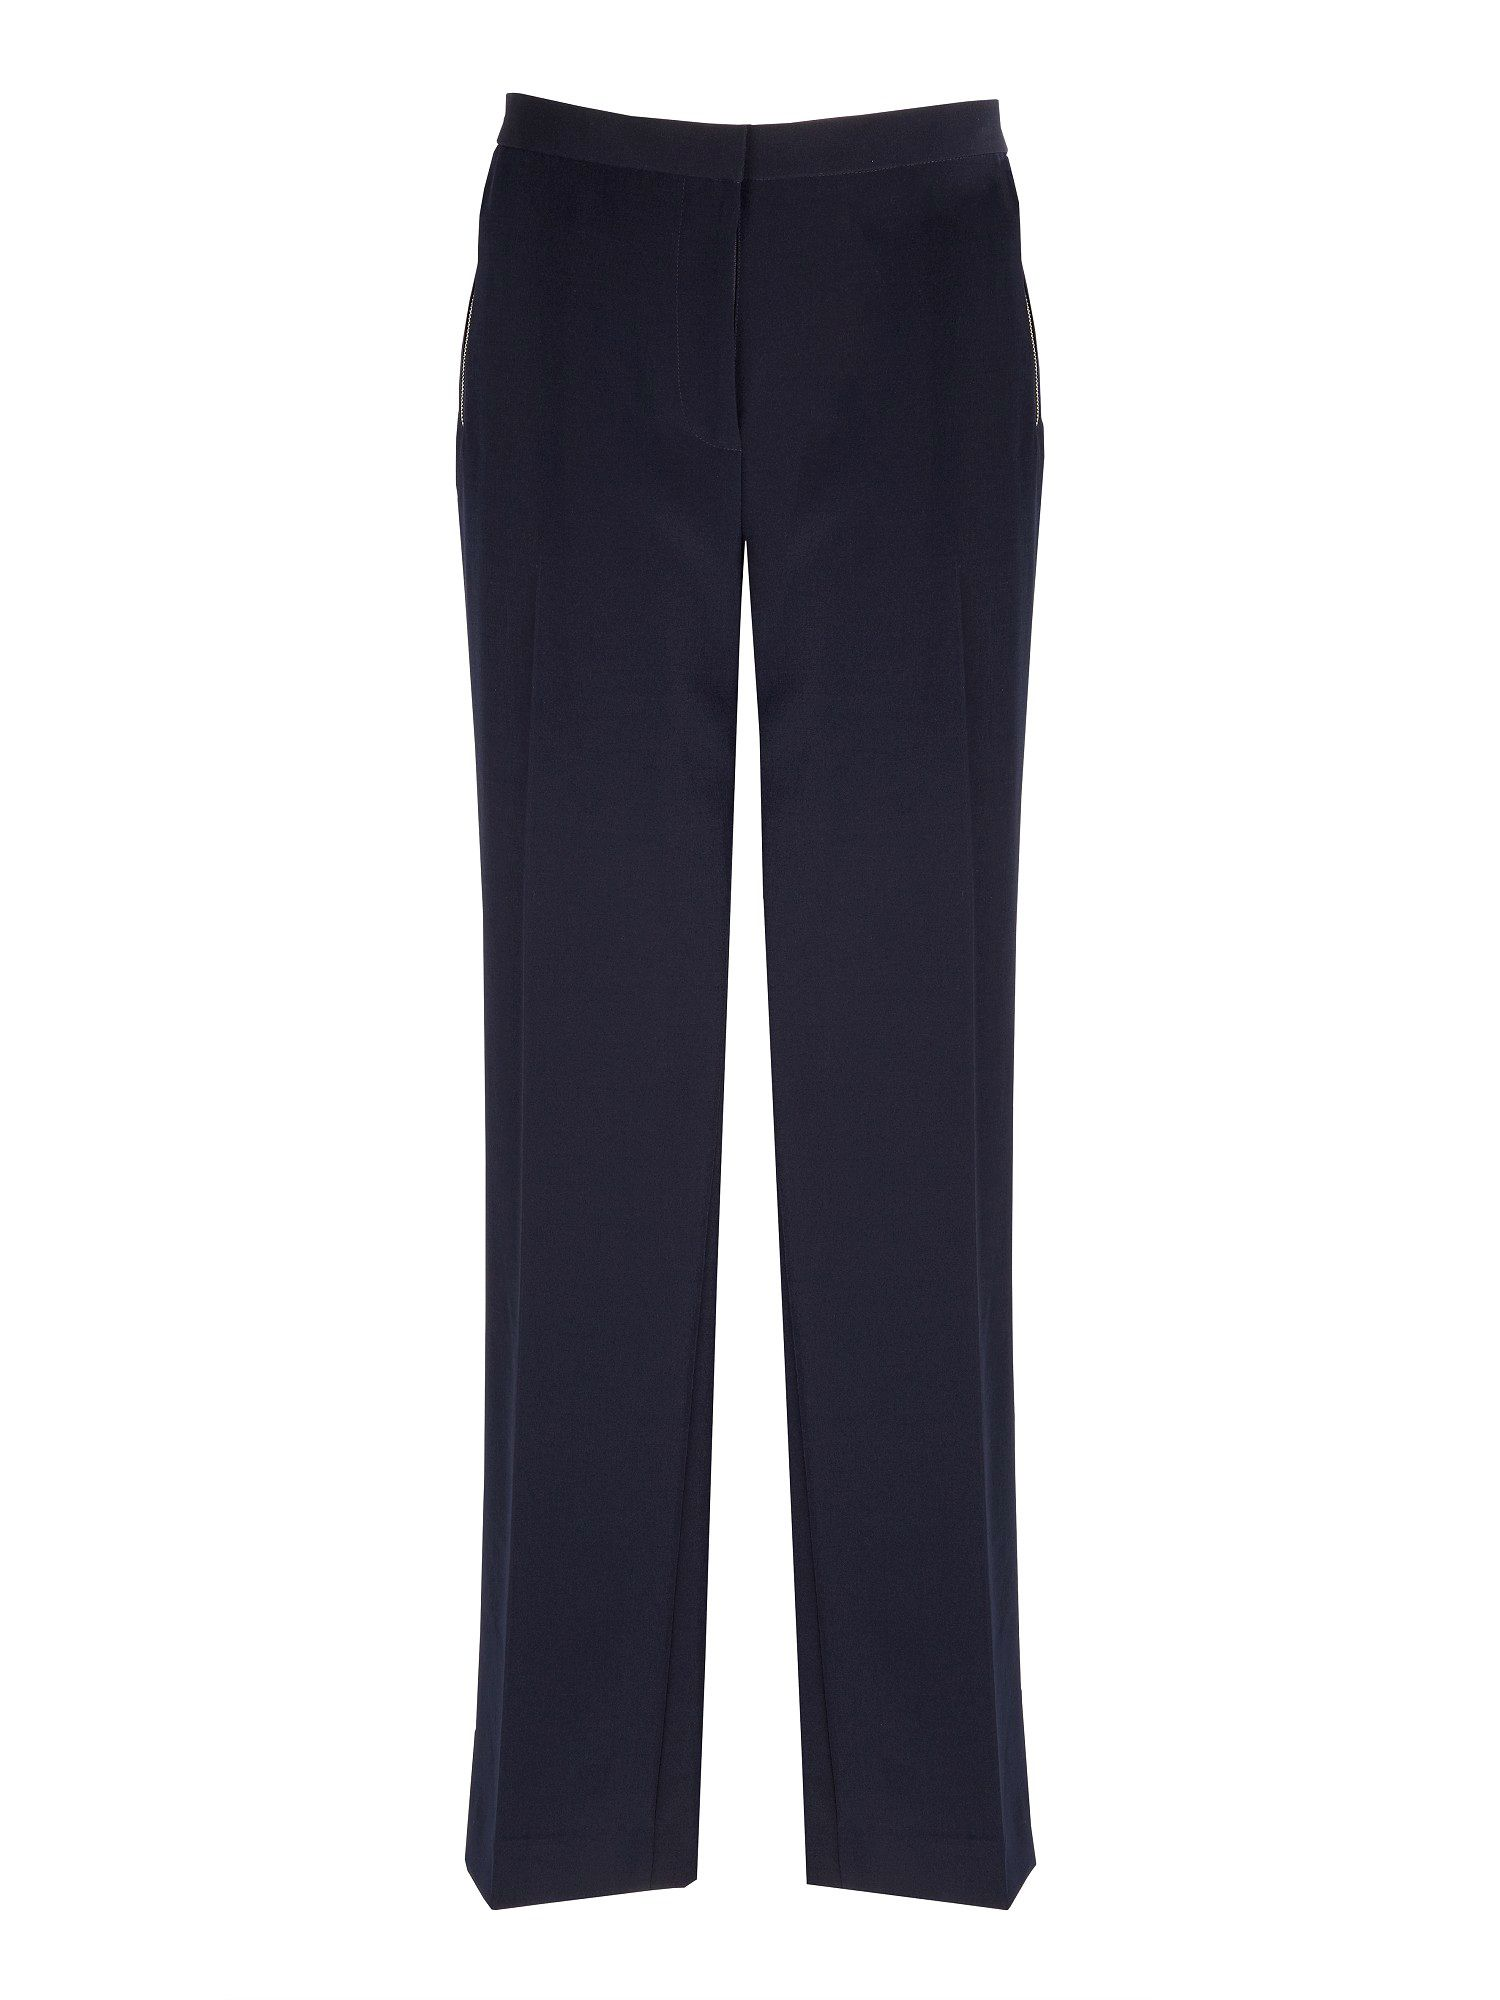 Navy zip detail trouser